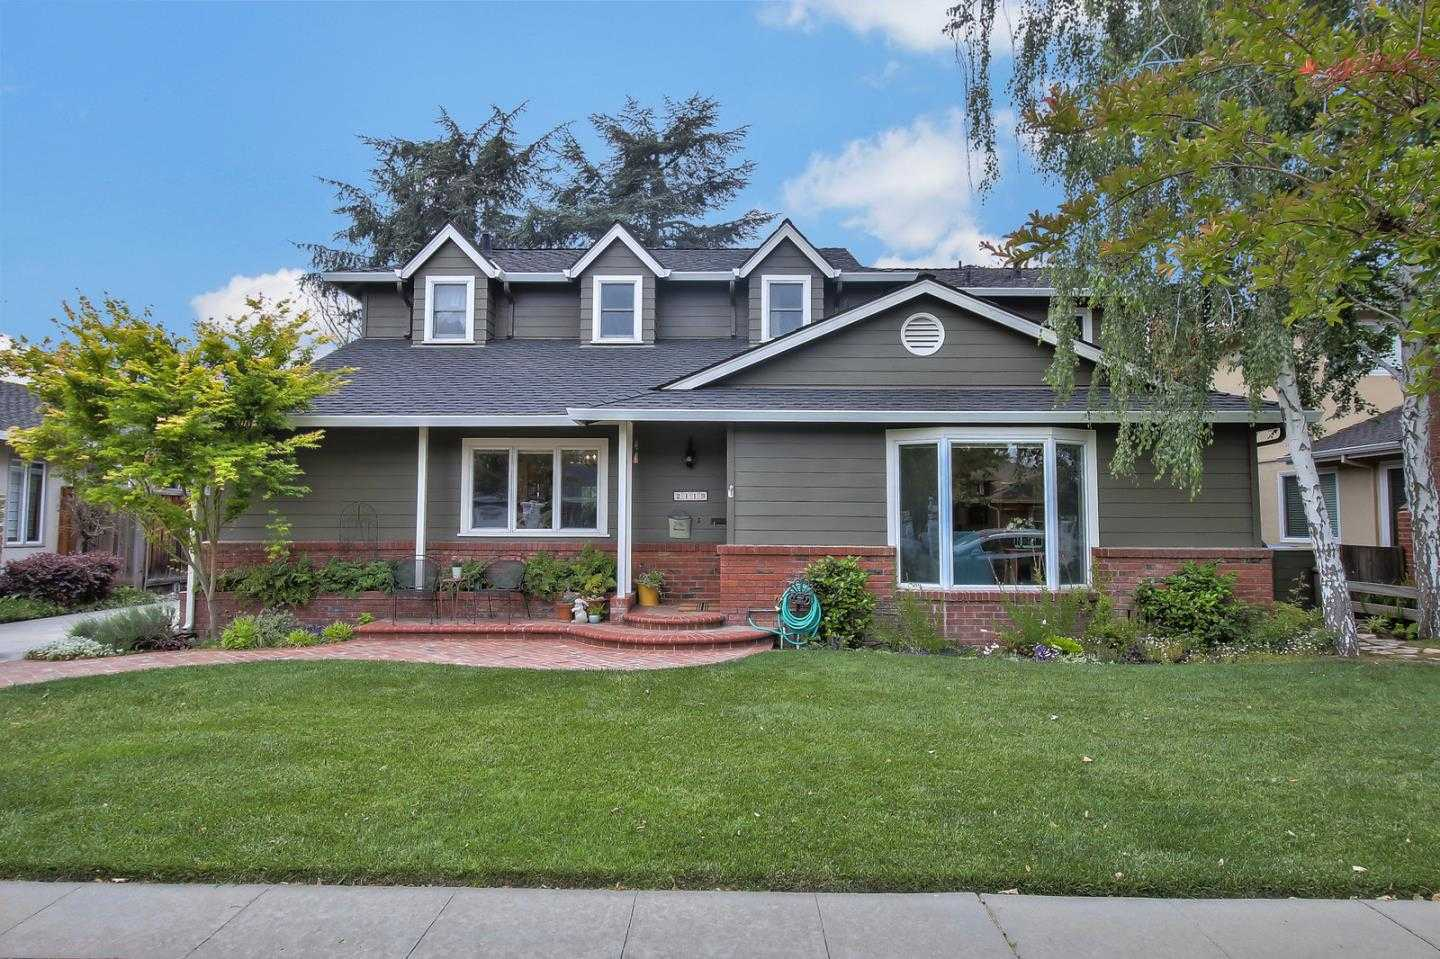 $1,948,000 - 4Br/4Ba -  for Sale in San Jose